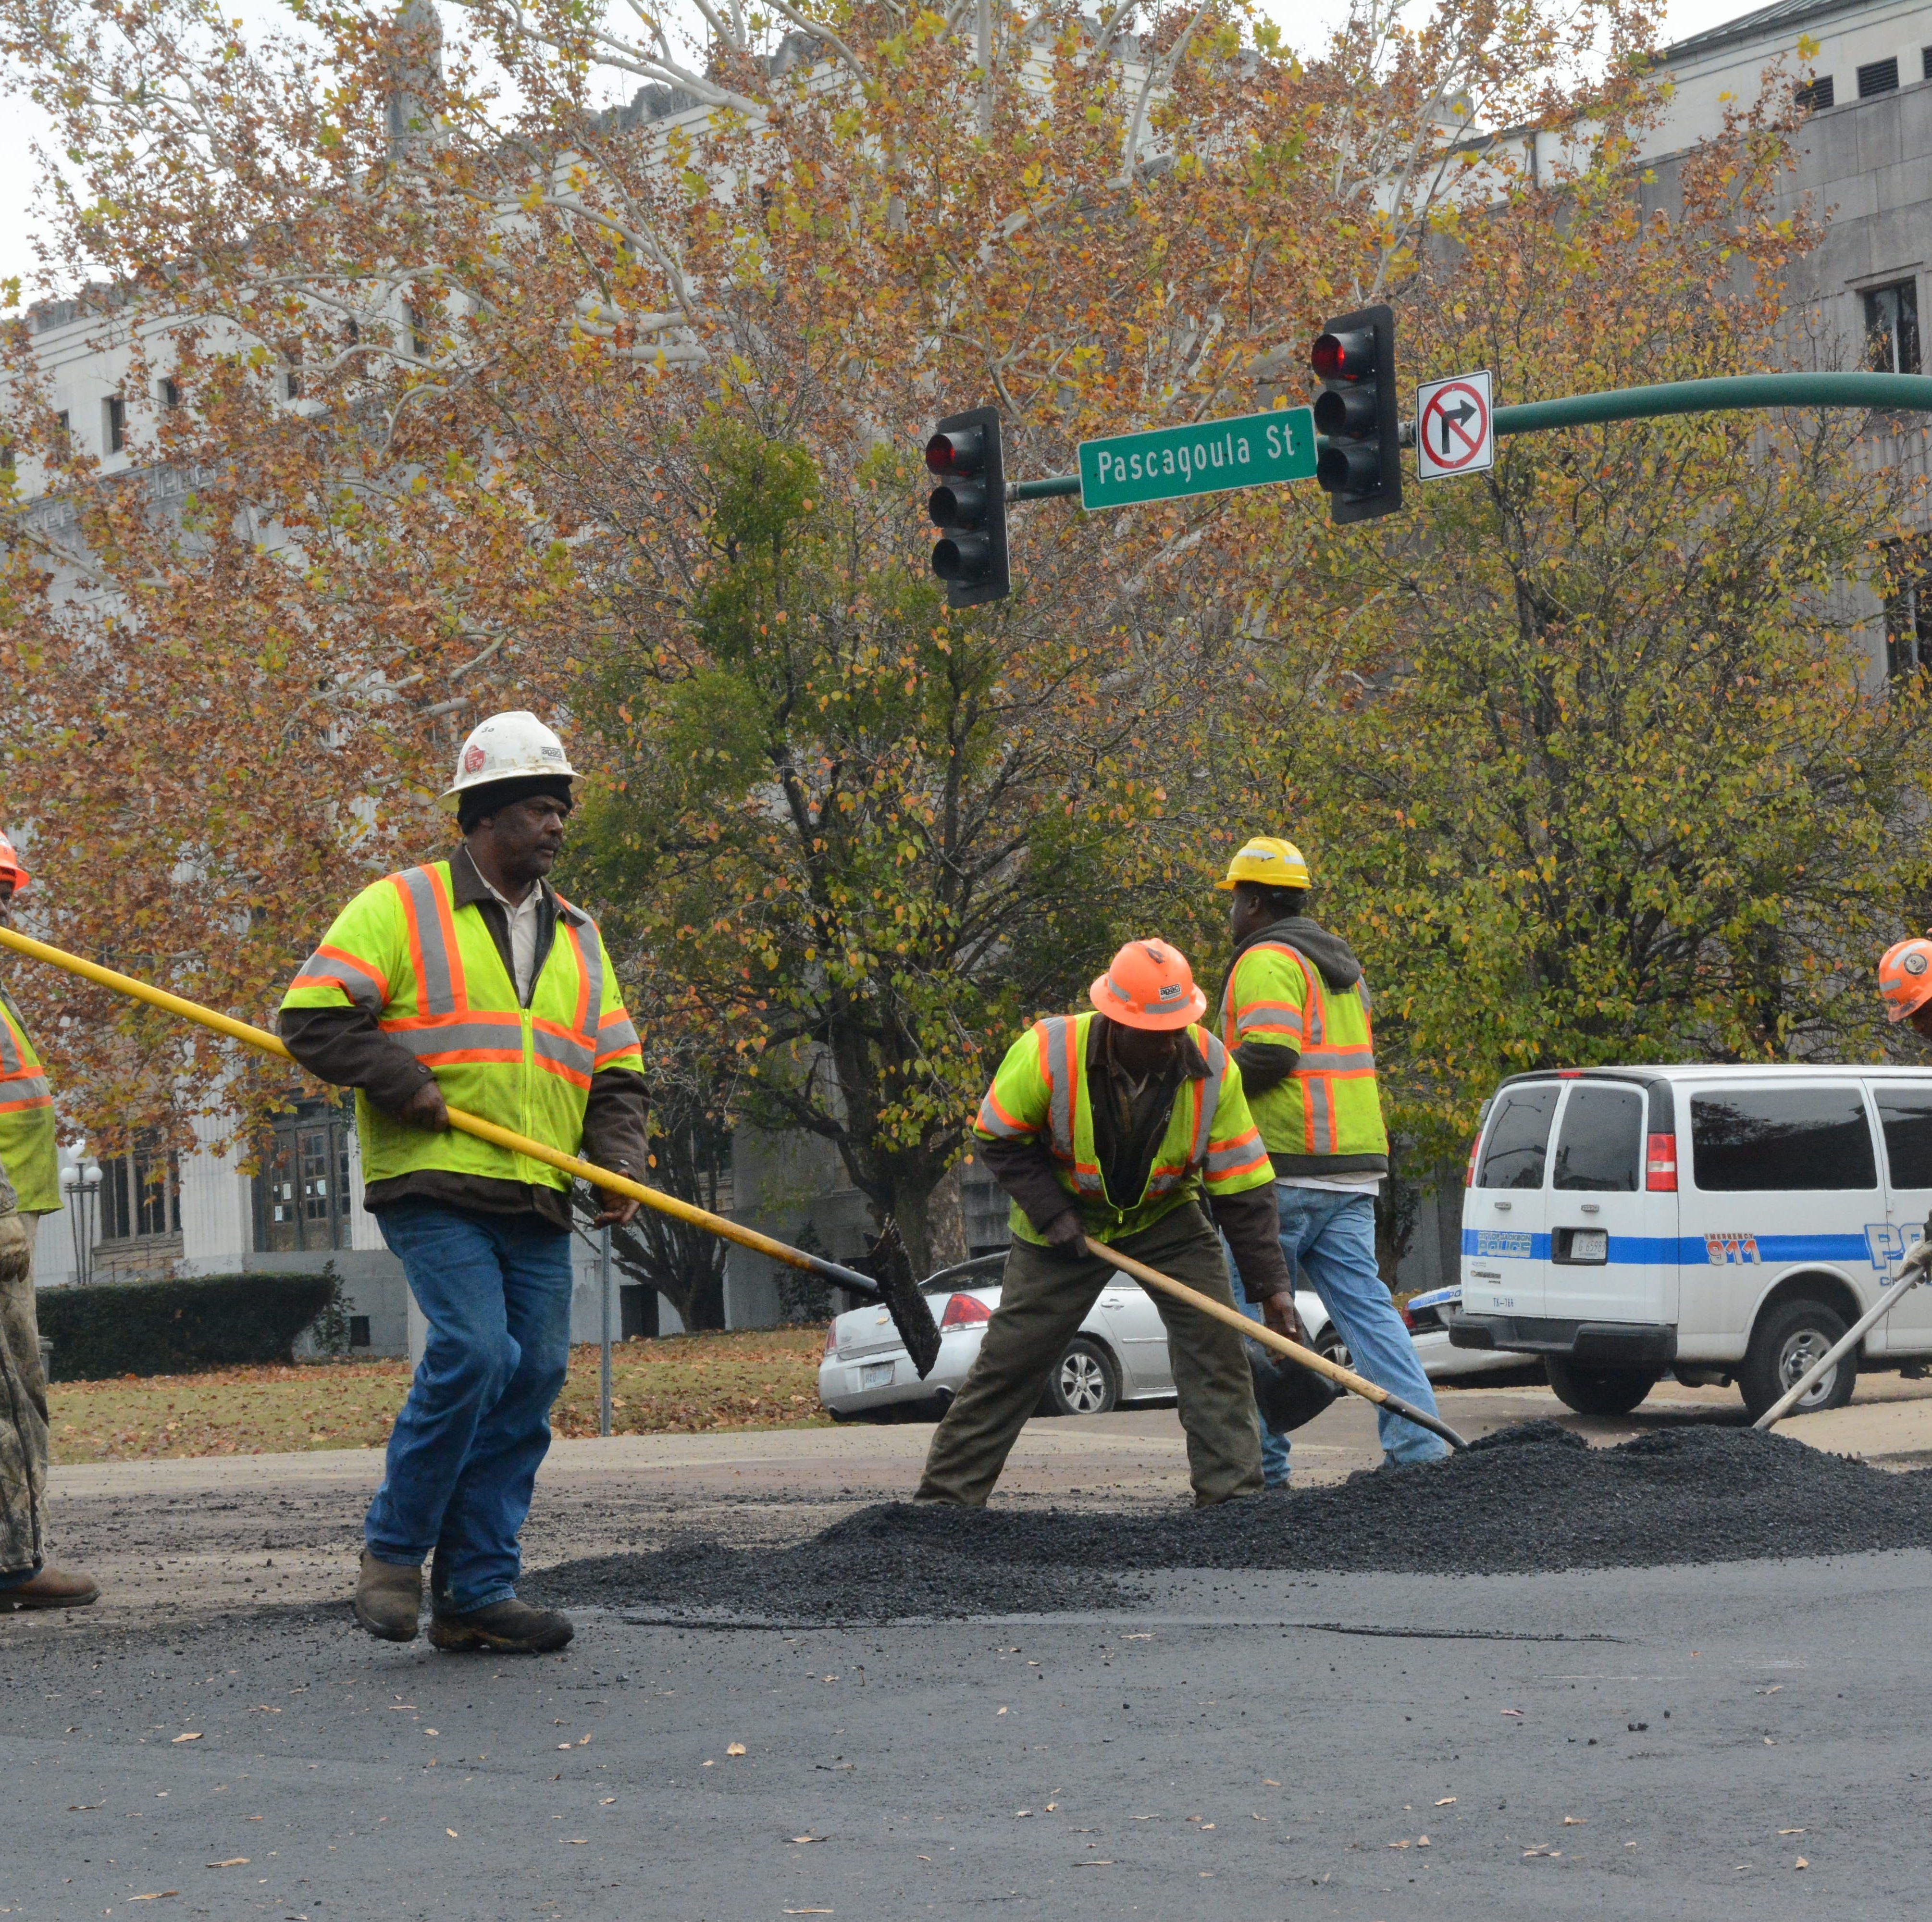 Jackson city workers, like these public works employees seen here repaving Pearl Street in downtown Jackson on Dec. 20, 2017, will be getting a 2 percent pay boost, under a proposal the Jackson City Council discussed during budget talks Wednesday, Aug. 15, 2018.